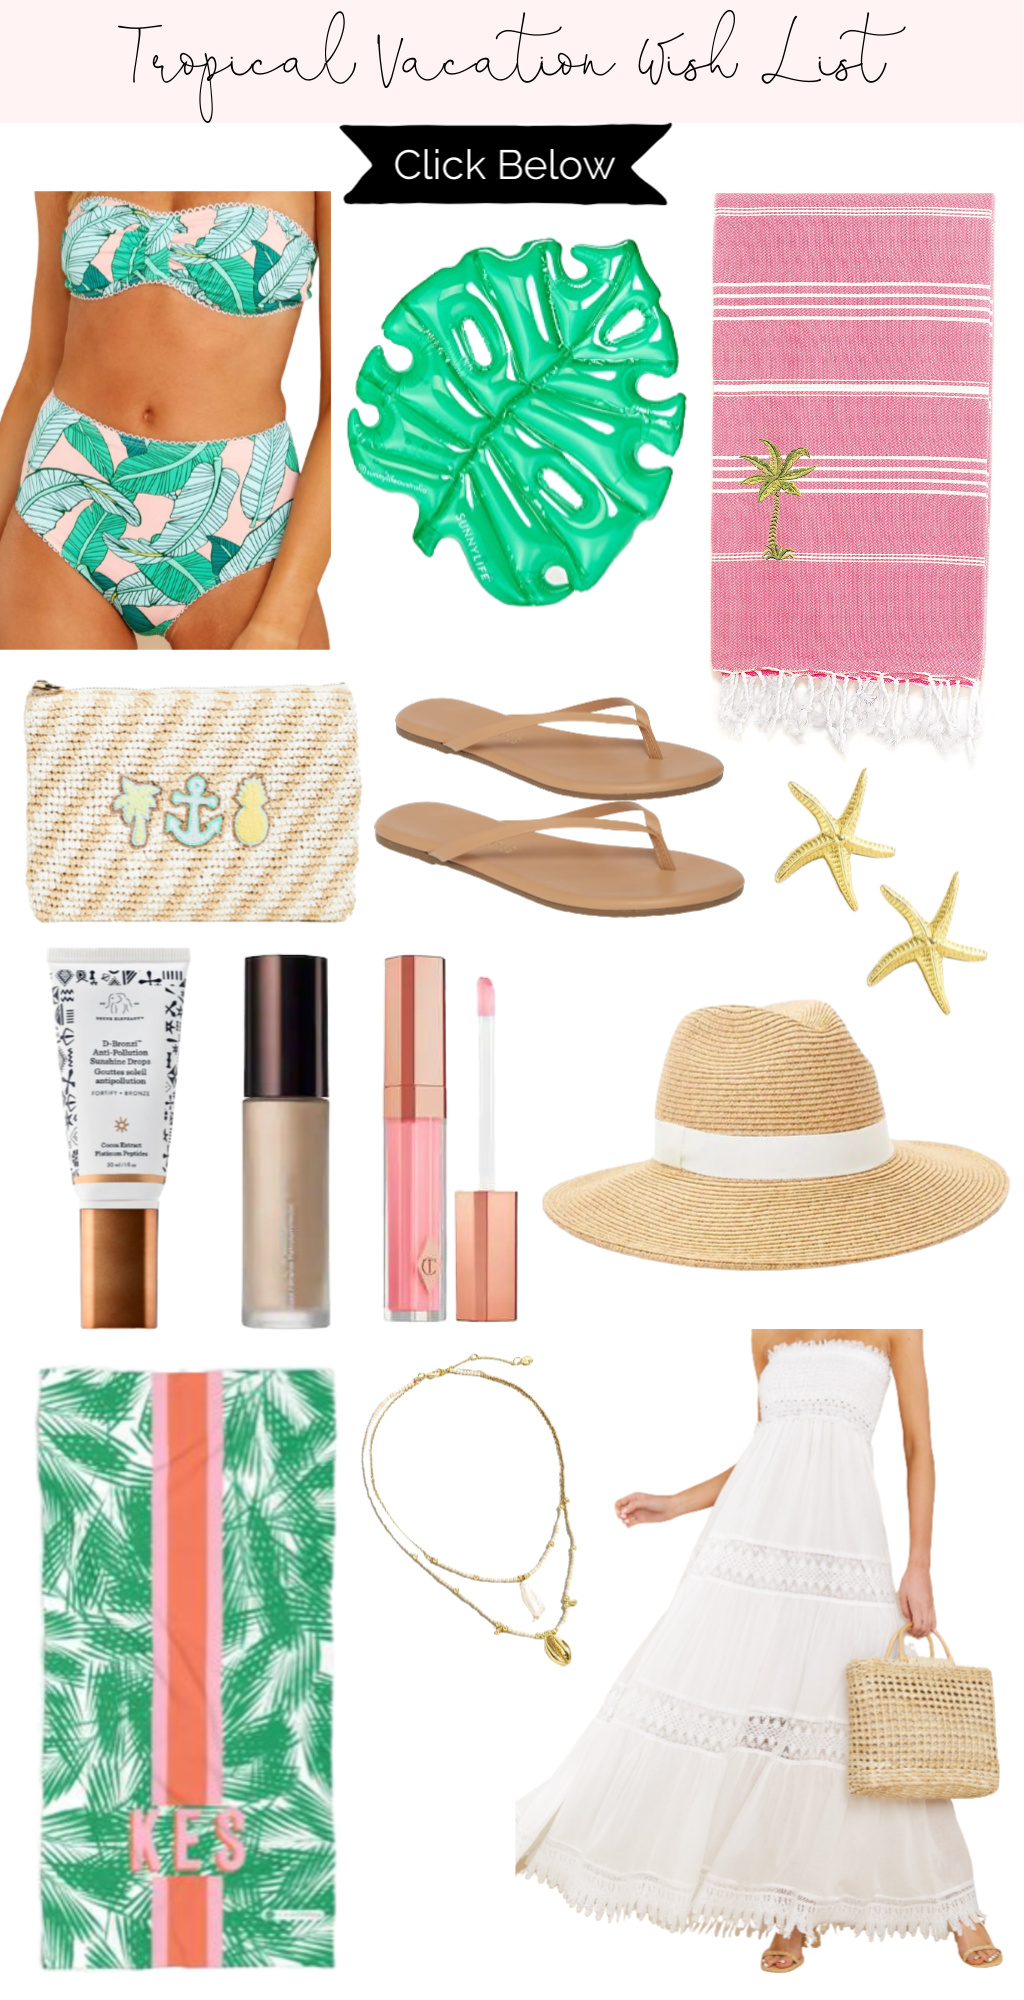 Tropical Vacation Wish List